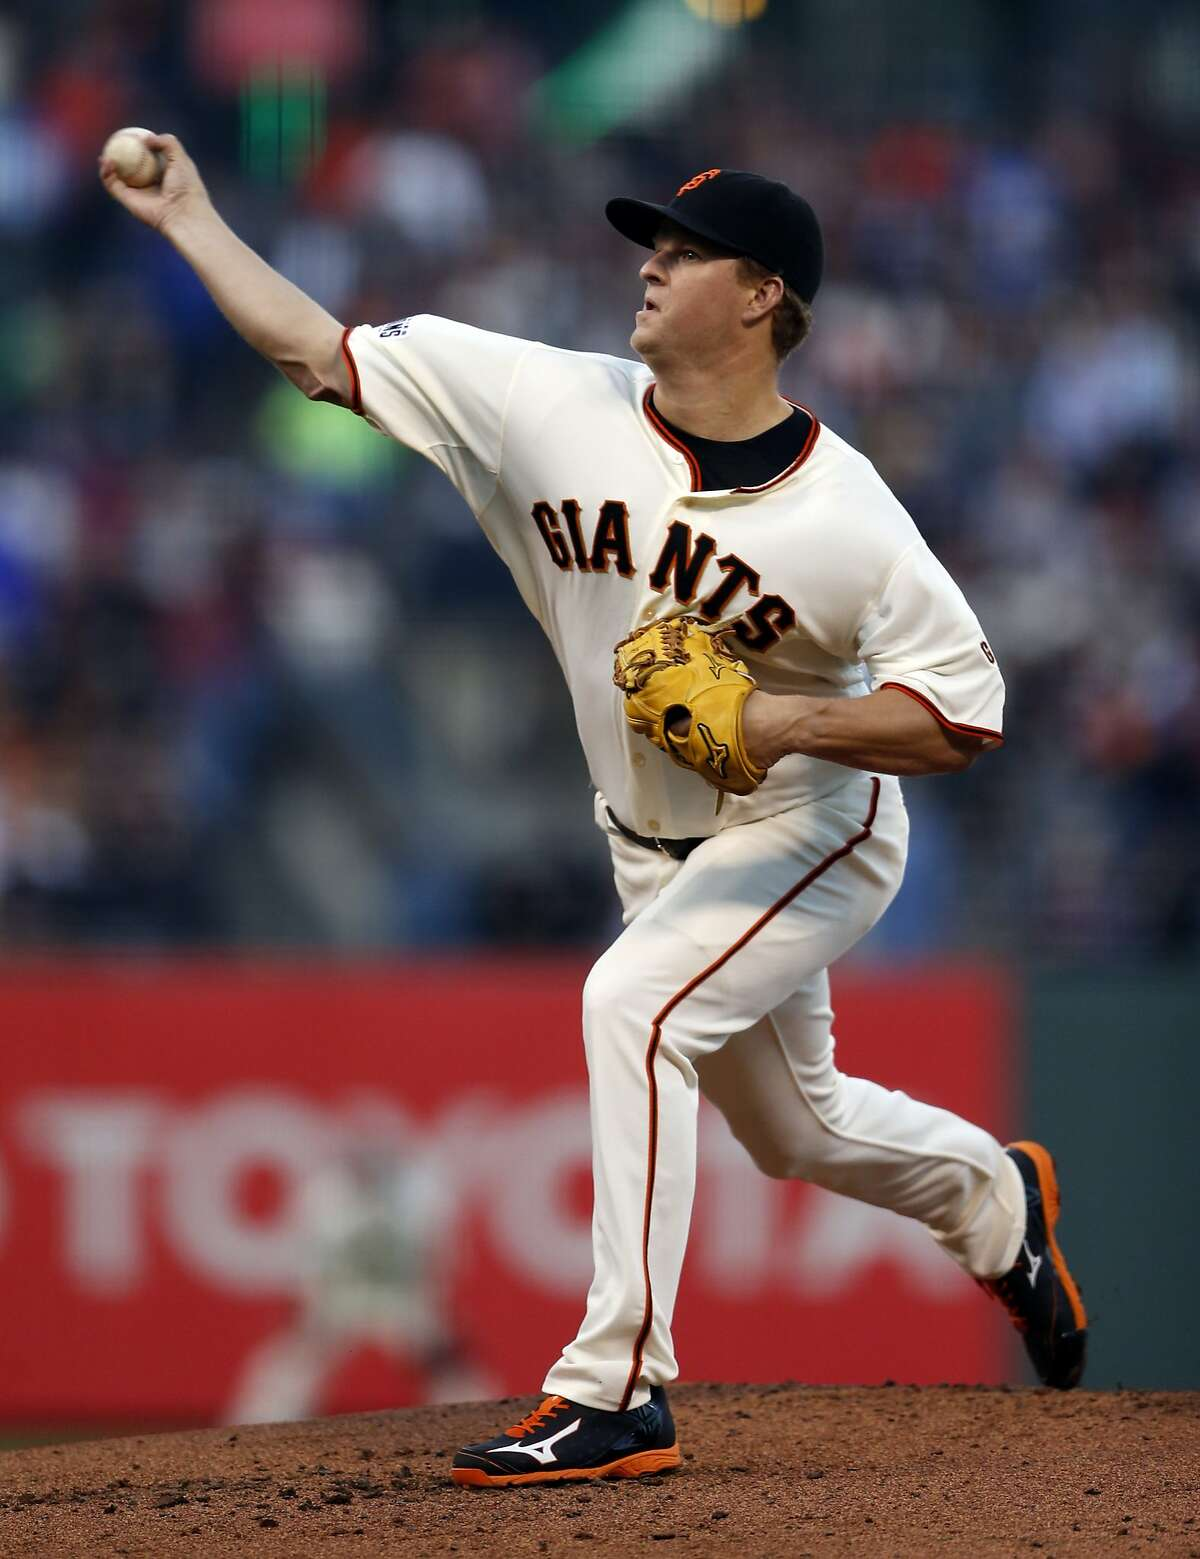 San Francisco Giants' Matt Cain pitches against Chicago Cubs in 2nd inning during MLB game at AT&T Park in San Francisco, Calif., on Tuesday, Aug. 25, 2015.